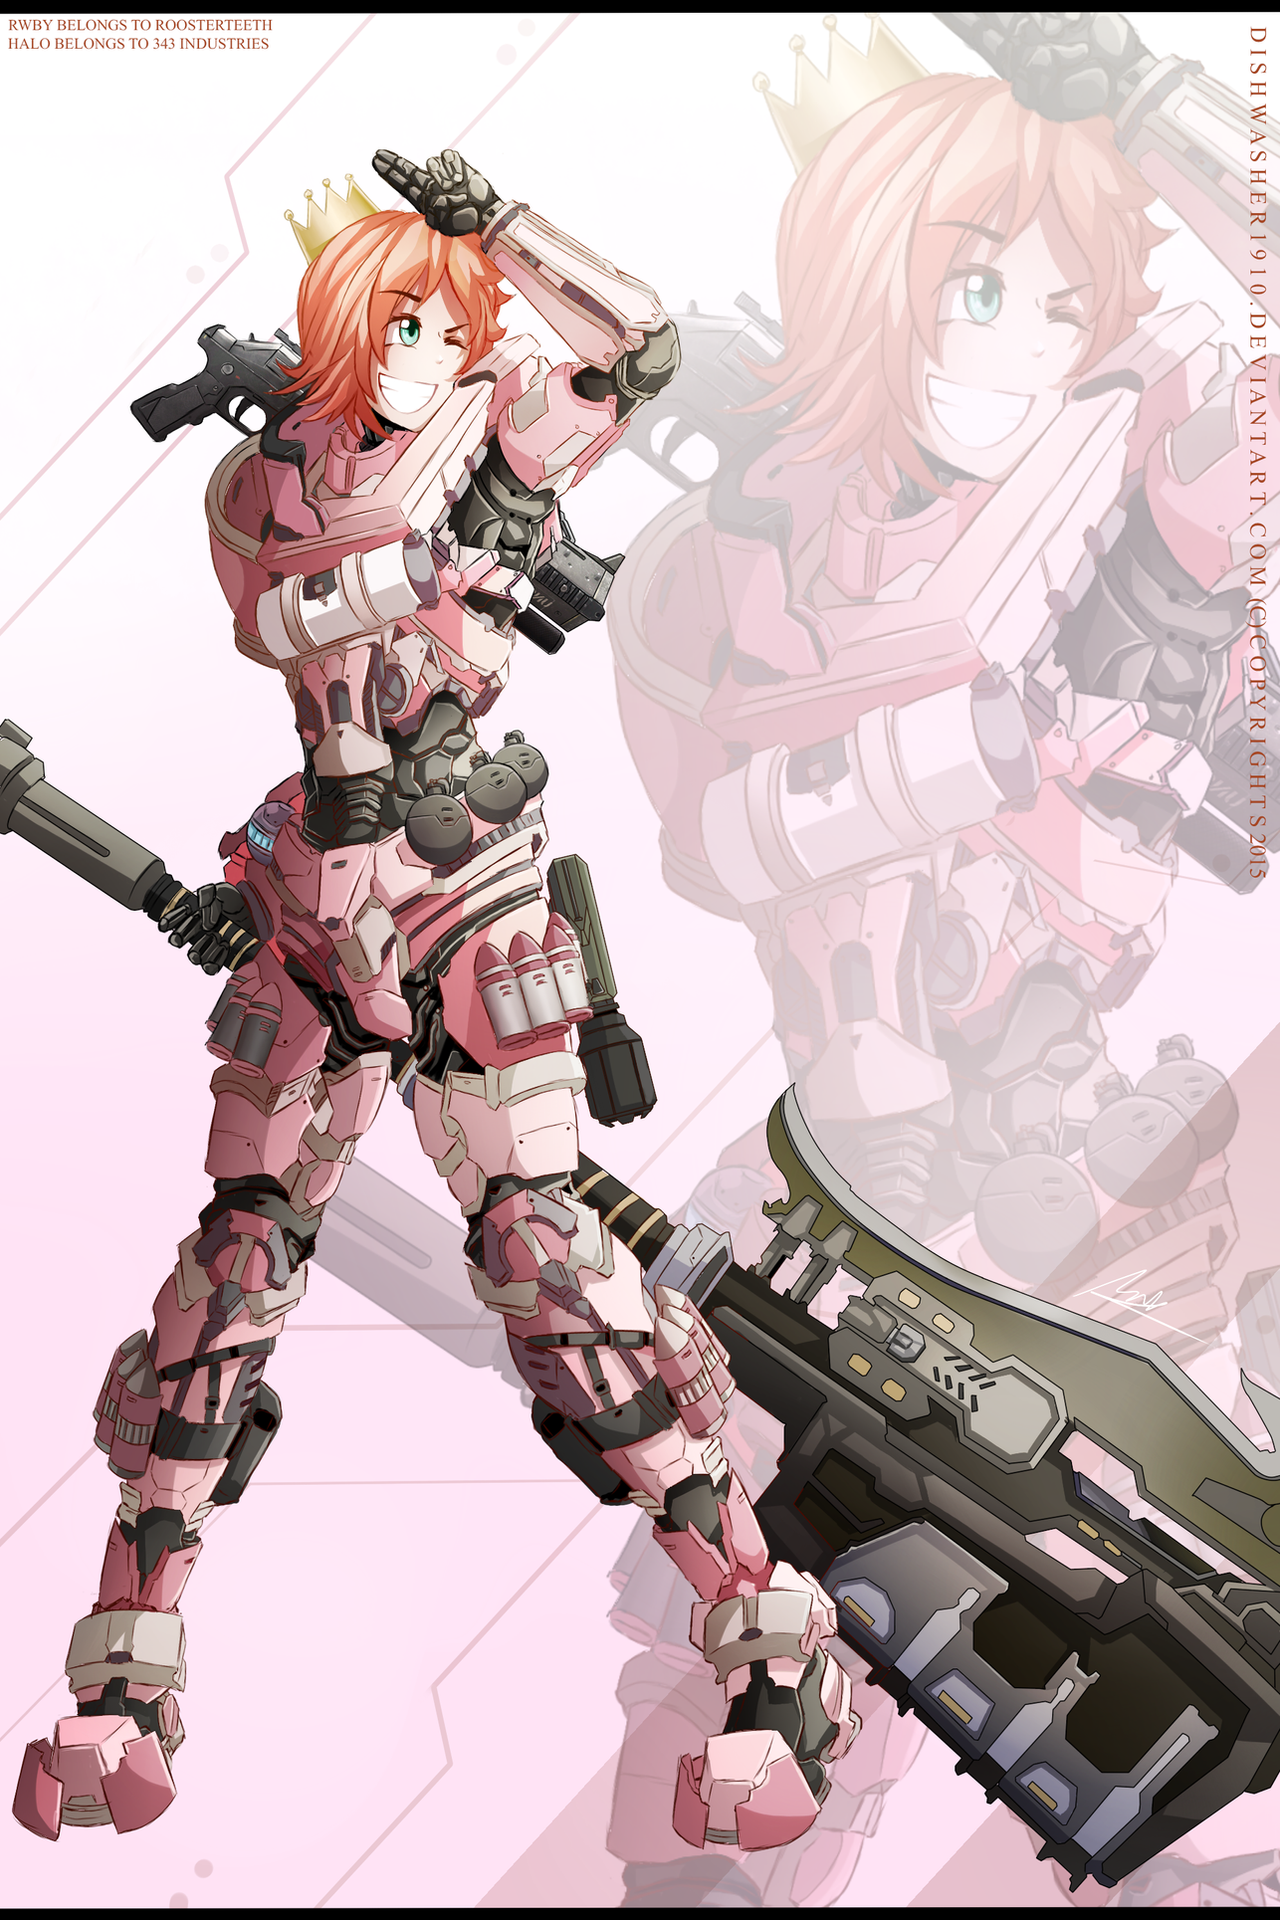 RWBY Nora Valkyrie SPARTAN Armour 505955668 on rwby jnpr vol 4